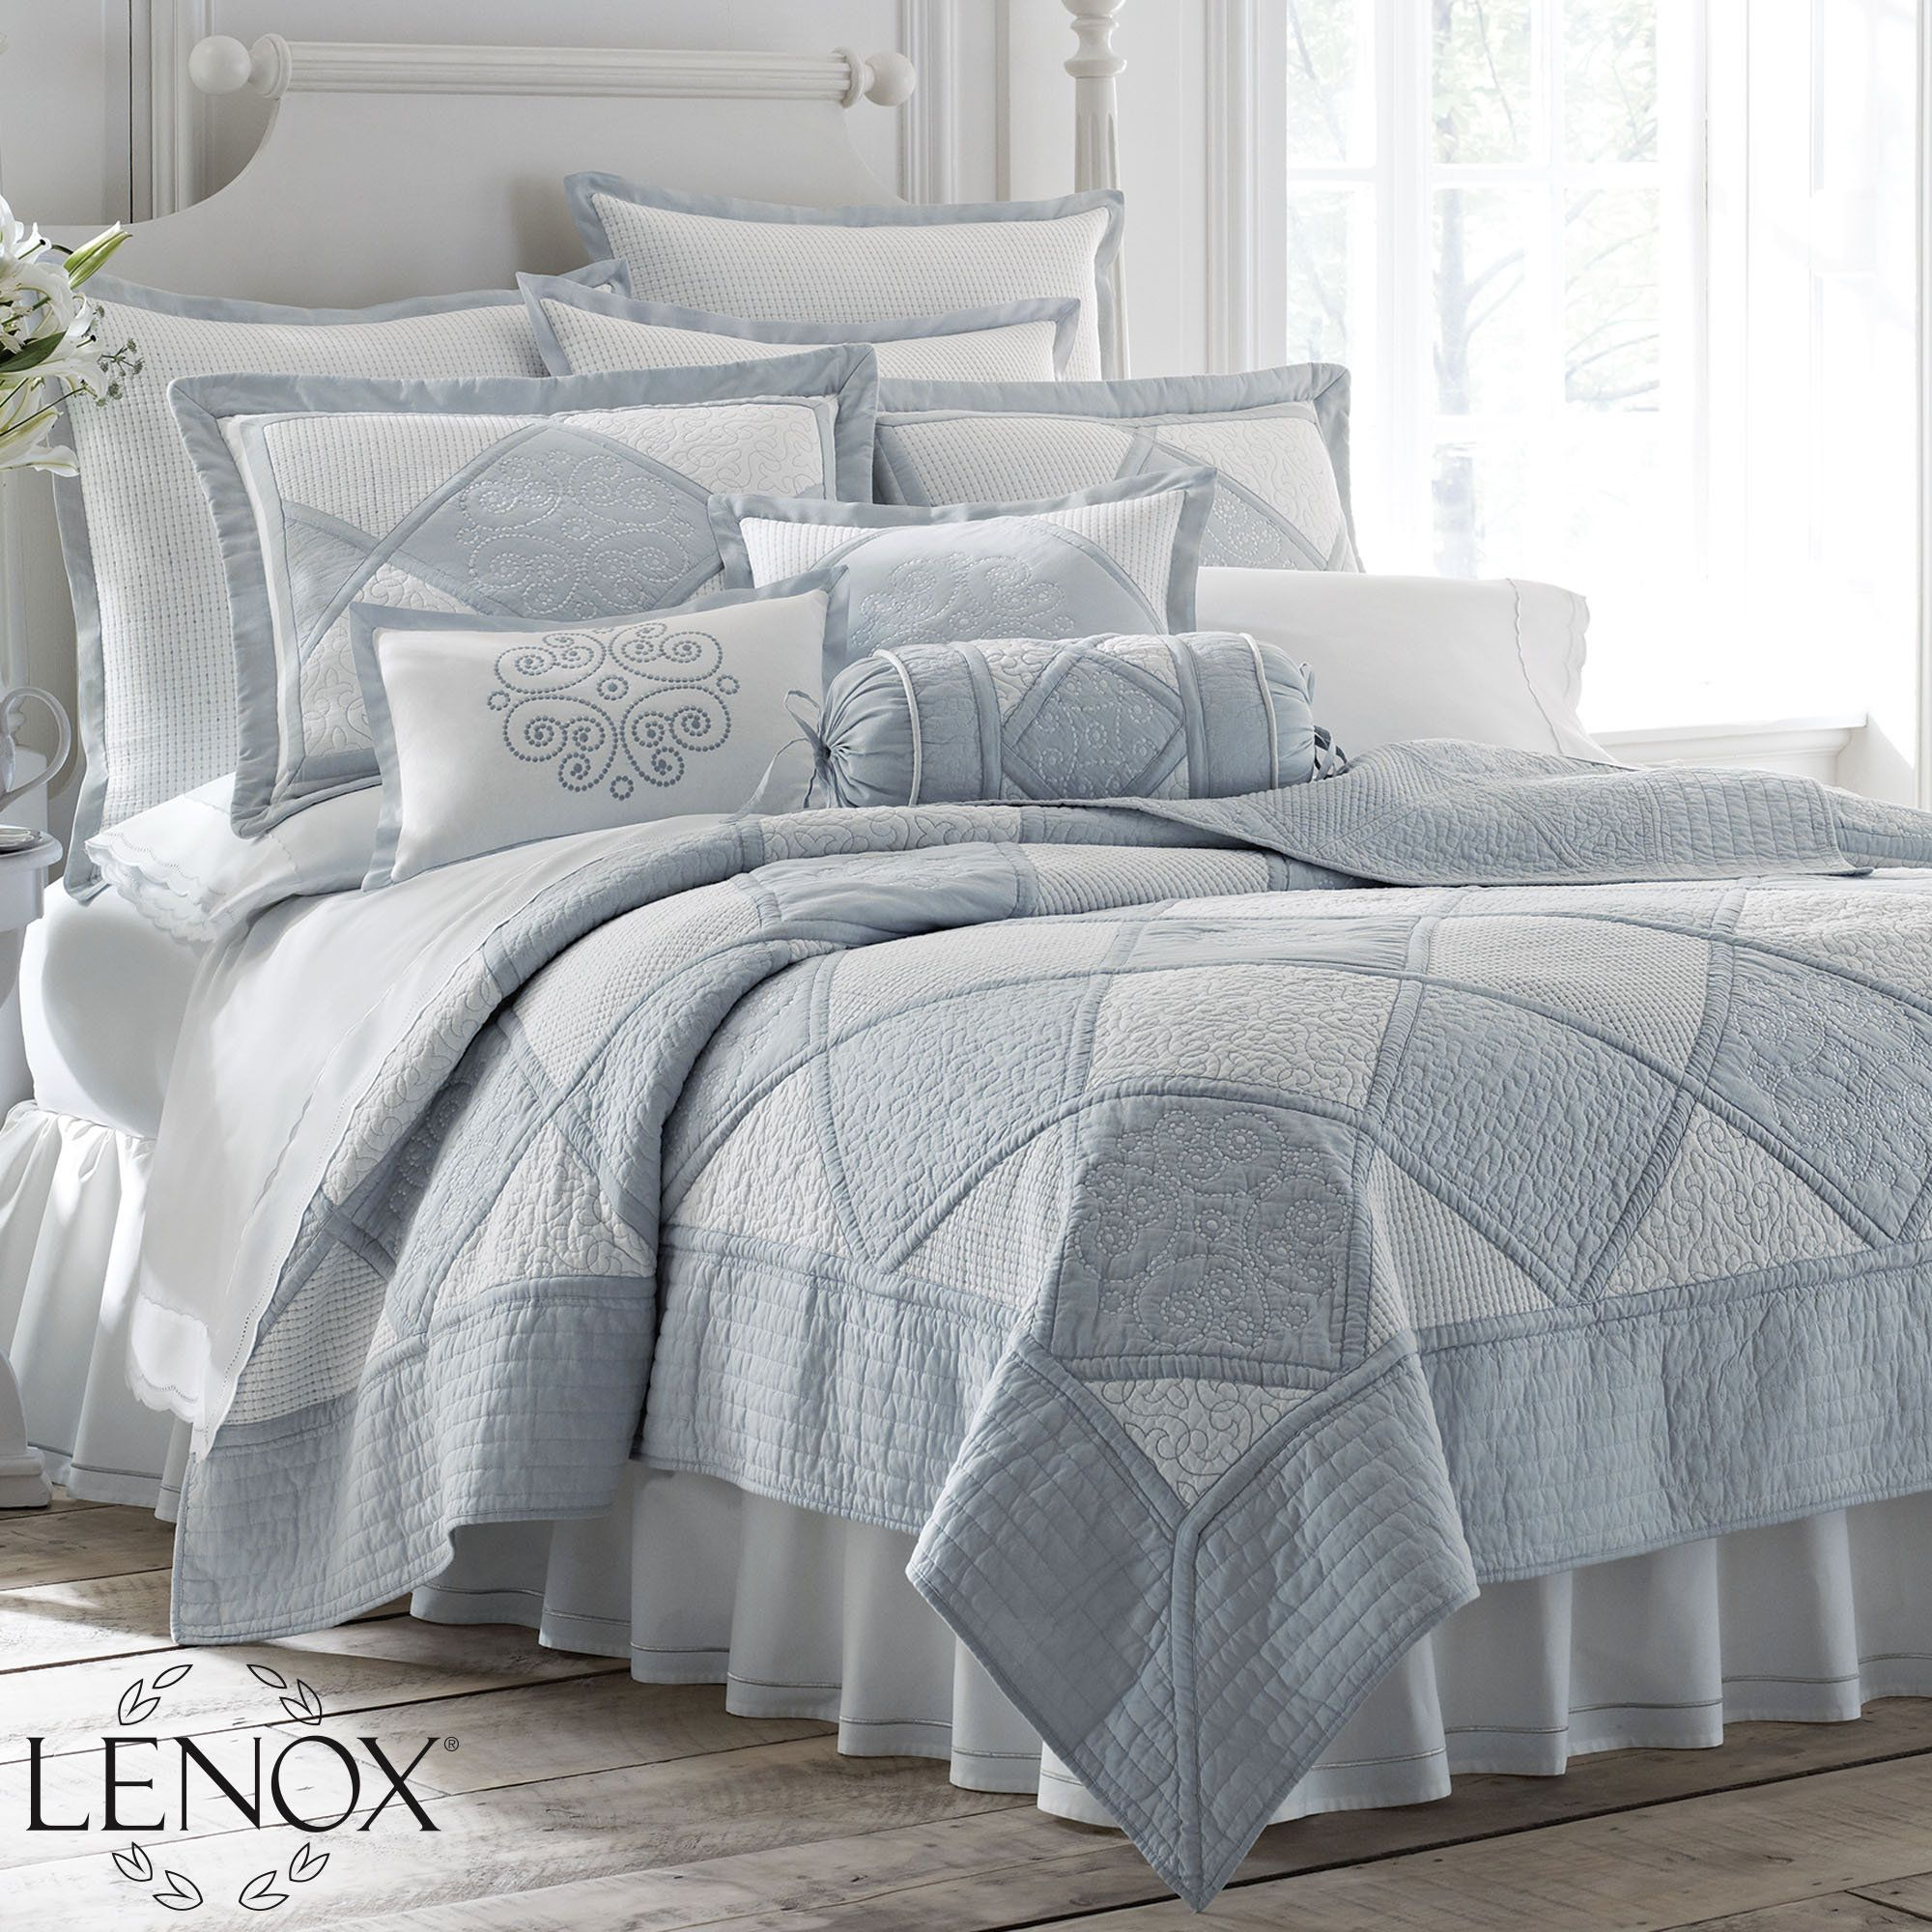 Great French Bedding | Touch Of Class Great Ideas